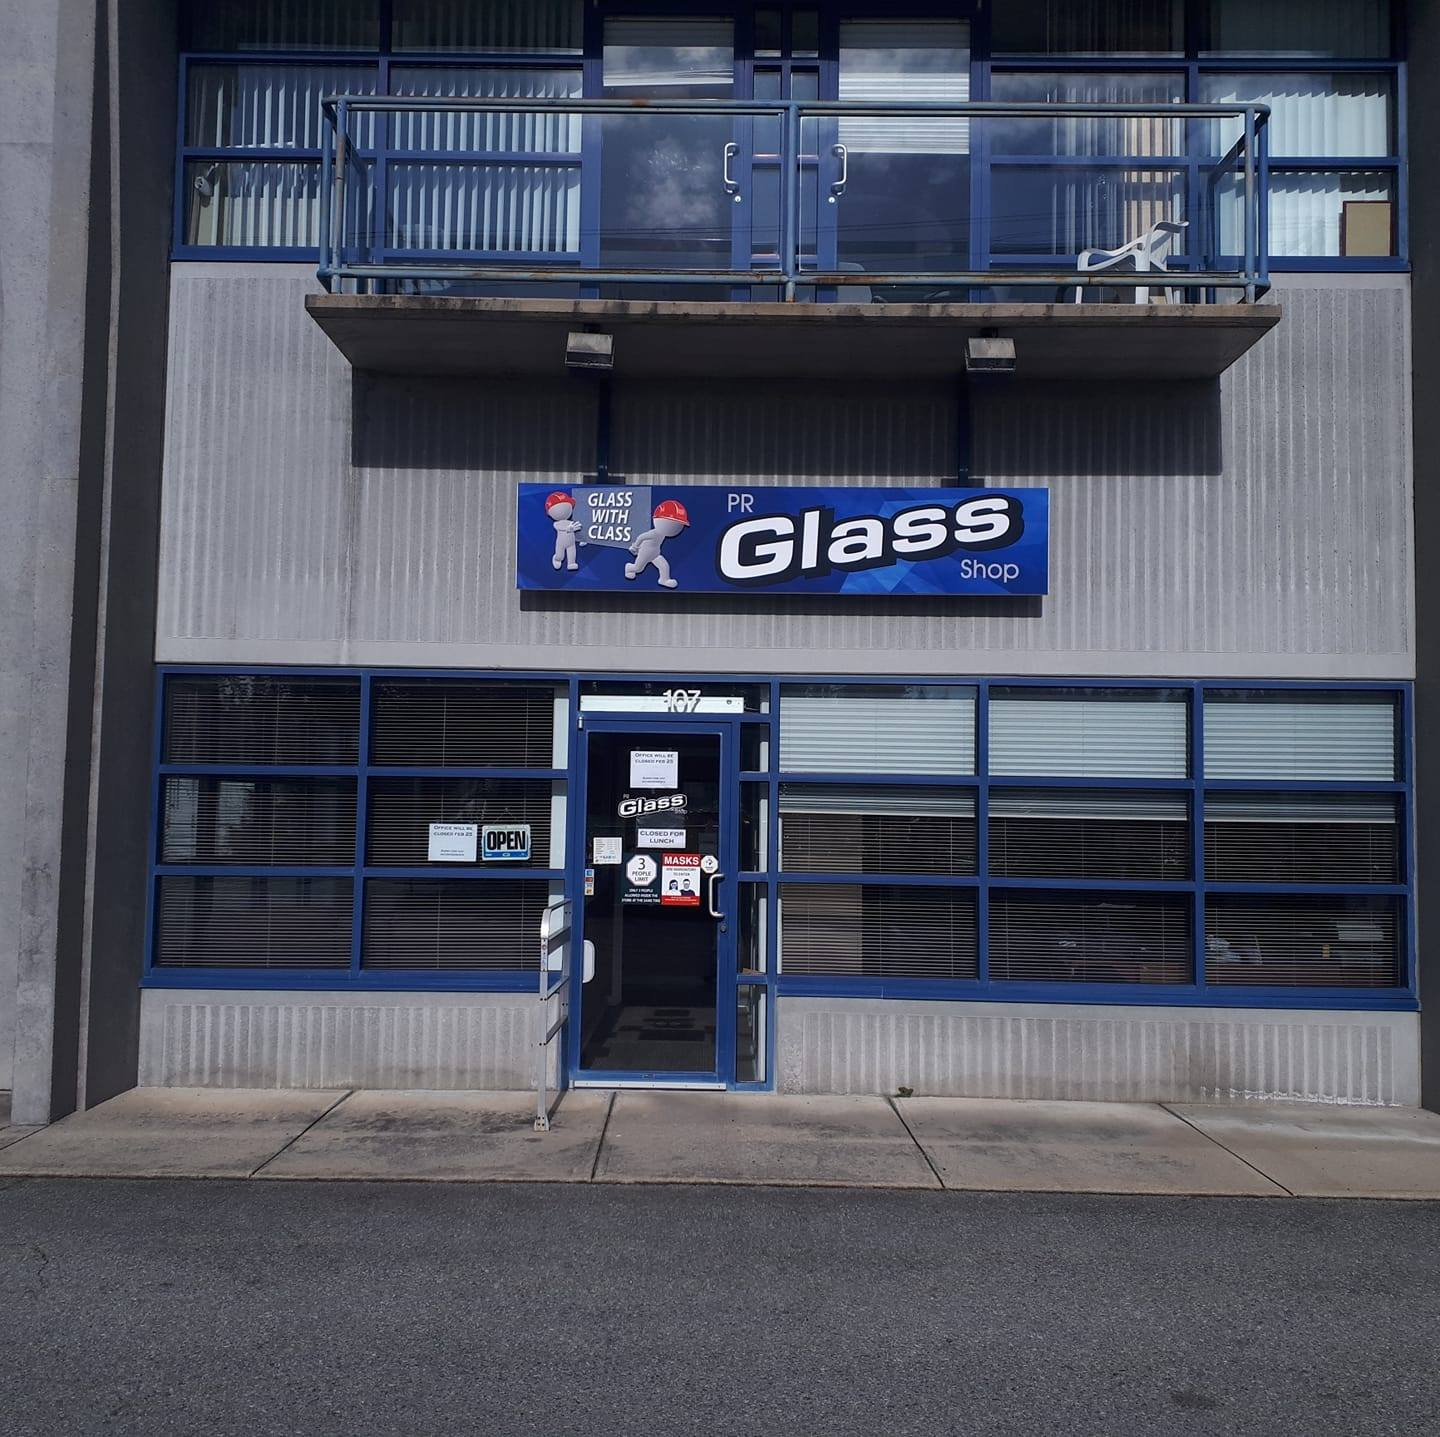 PR Glass Shop